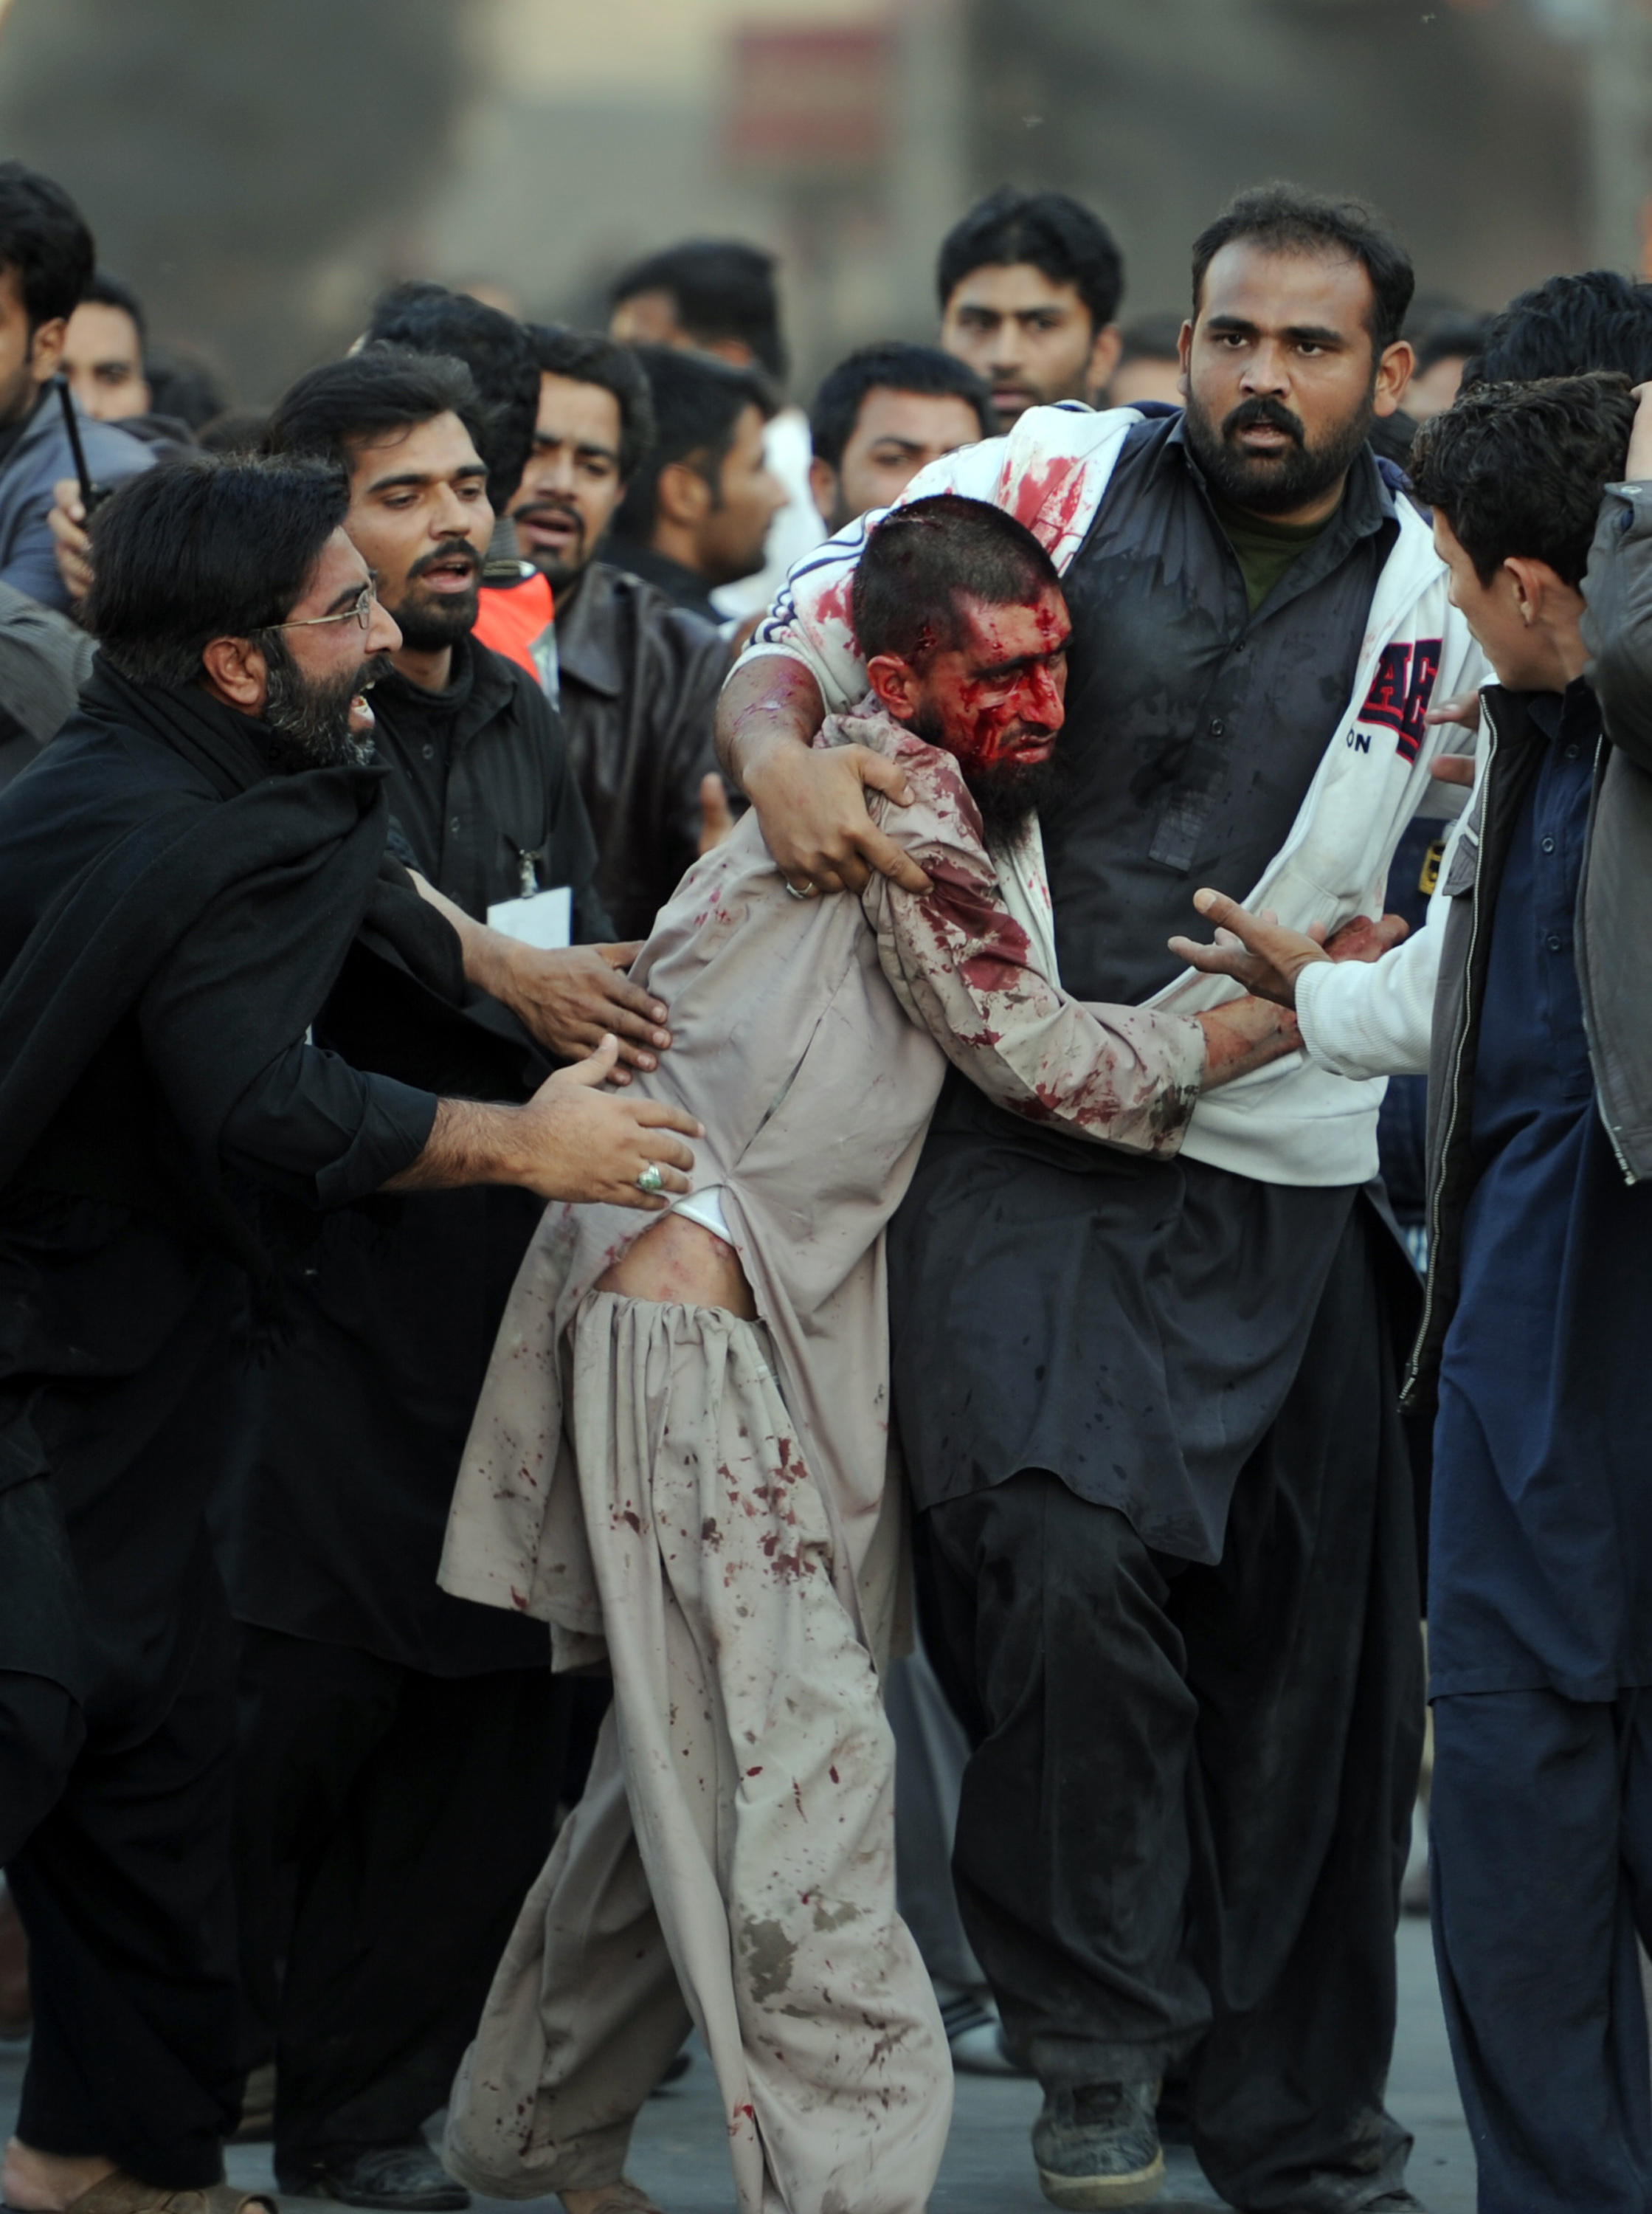 Pakistani Shiite Muslims assist an injured Sunni Muslim following clashes during an Ashura procession in Rawalpindi on November 15, 2013. Sectarian clashes in Pakistan's garrison city Rawalpindi left two people dead and over 20 injured as worshippers massed to mourn the seventh century martyrdom of Hussain, the grandson of prophet Mohammad. The clashes erupted in Rawalpindi when a procession by Shiite Muslims was underway in the main downtown area and a prayer sermon in a nearby Sunni Muslim mosque started at the same time. AFP PHOTO/Aamir QURESHI